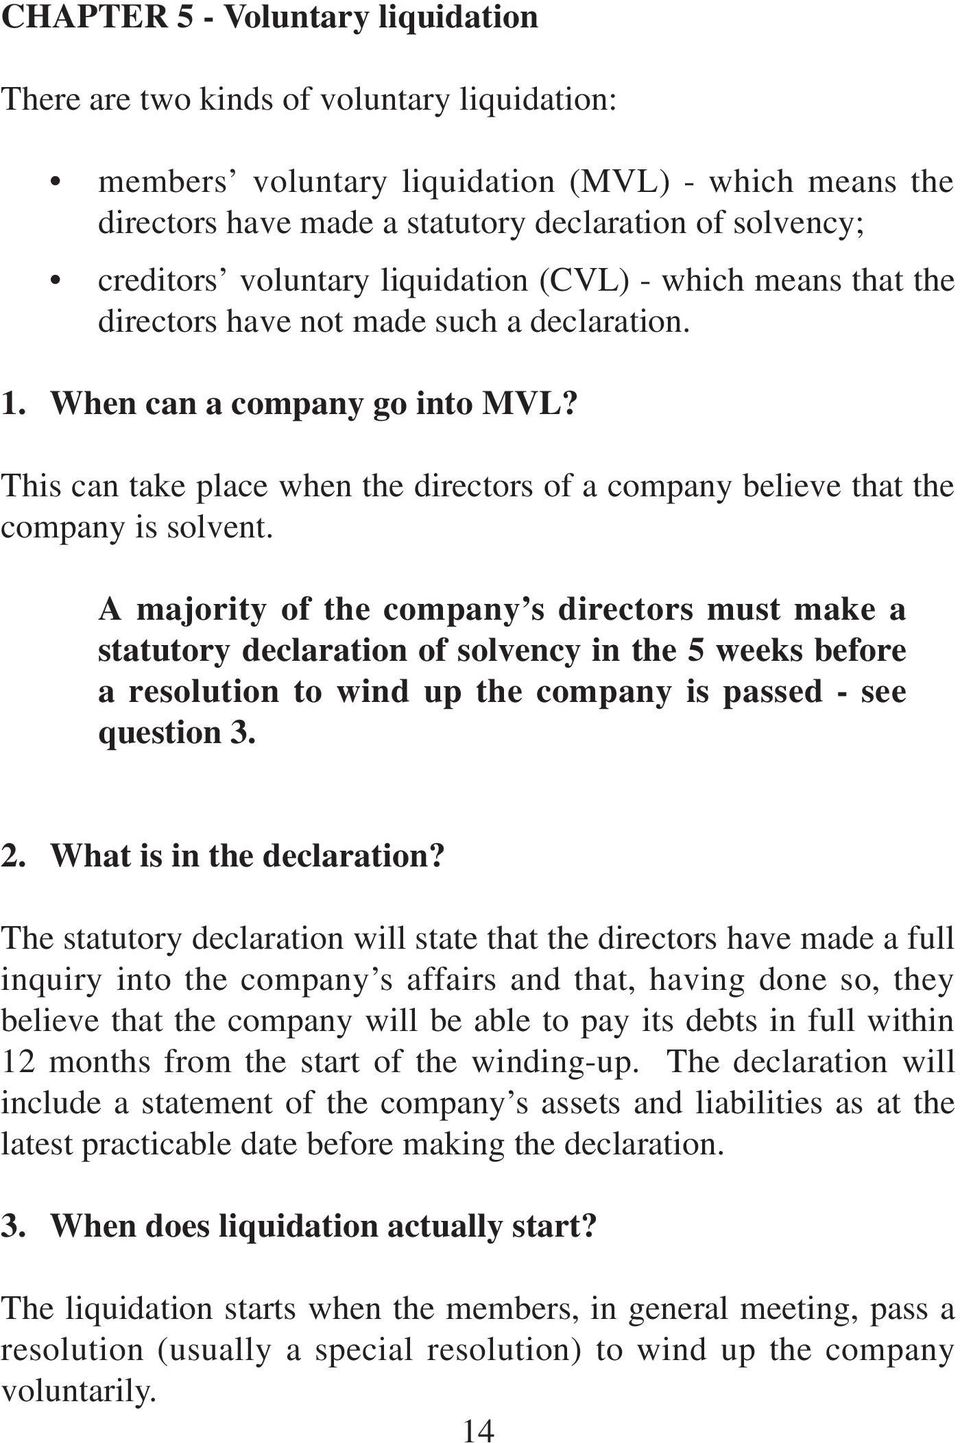 This can take place when the directors of a company believe that the company is solvent.